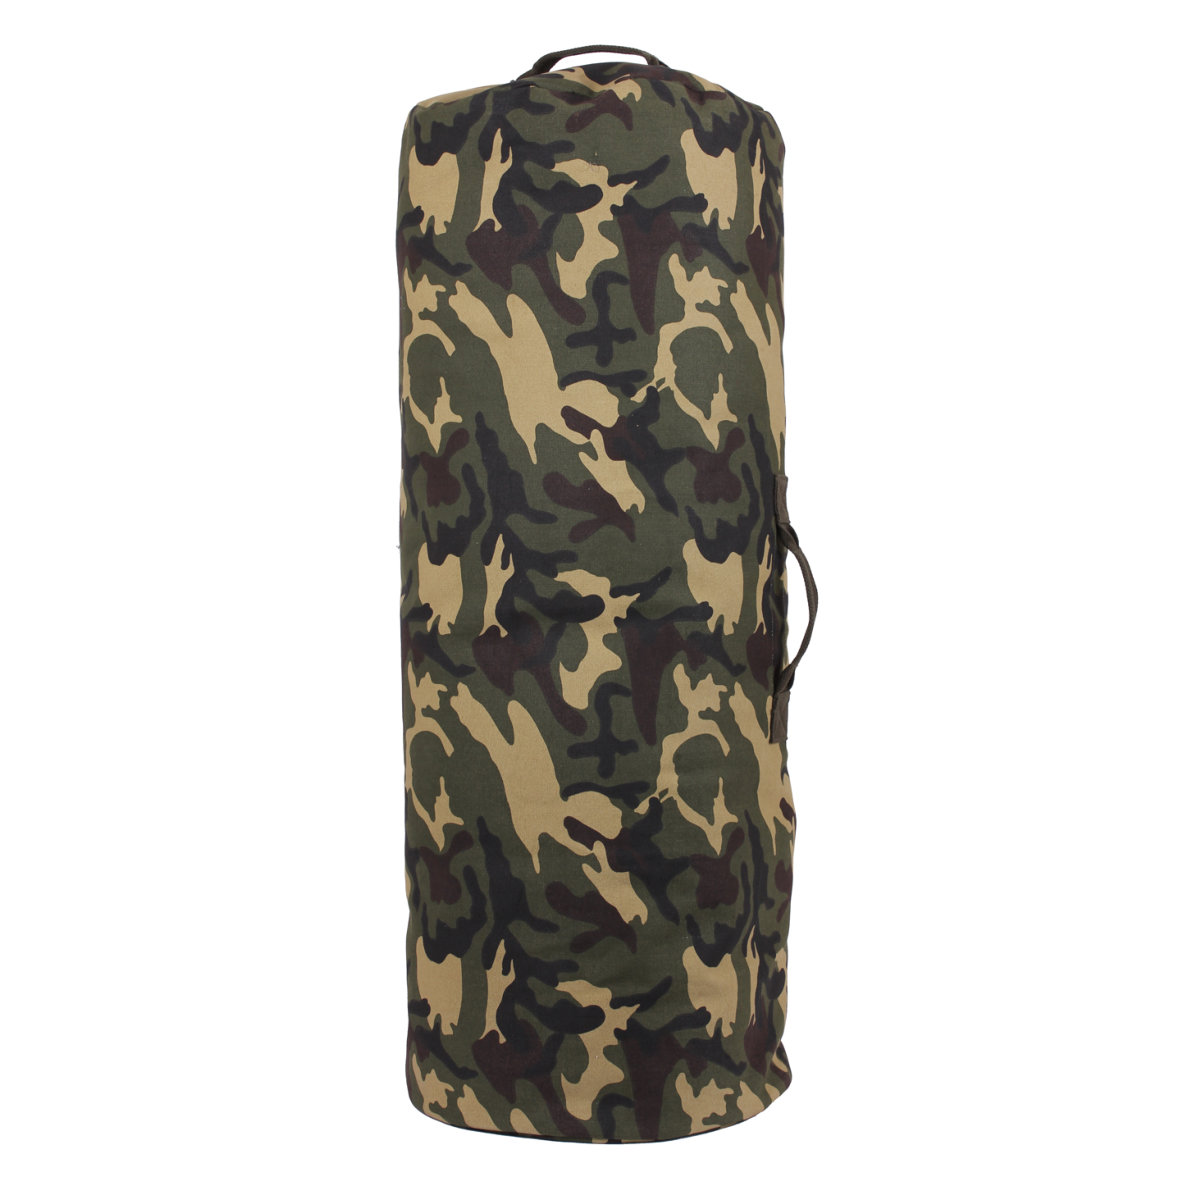 "Woodland Camo Side Zipper Canvas Duffle Bag Jumbo 25"" x 42"" by Rothco"